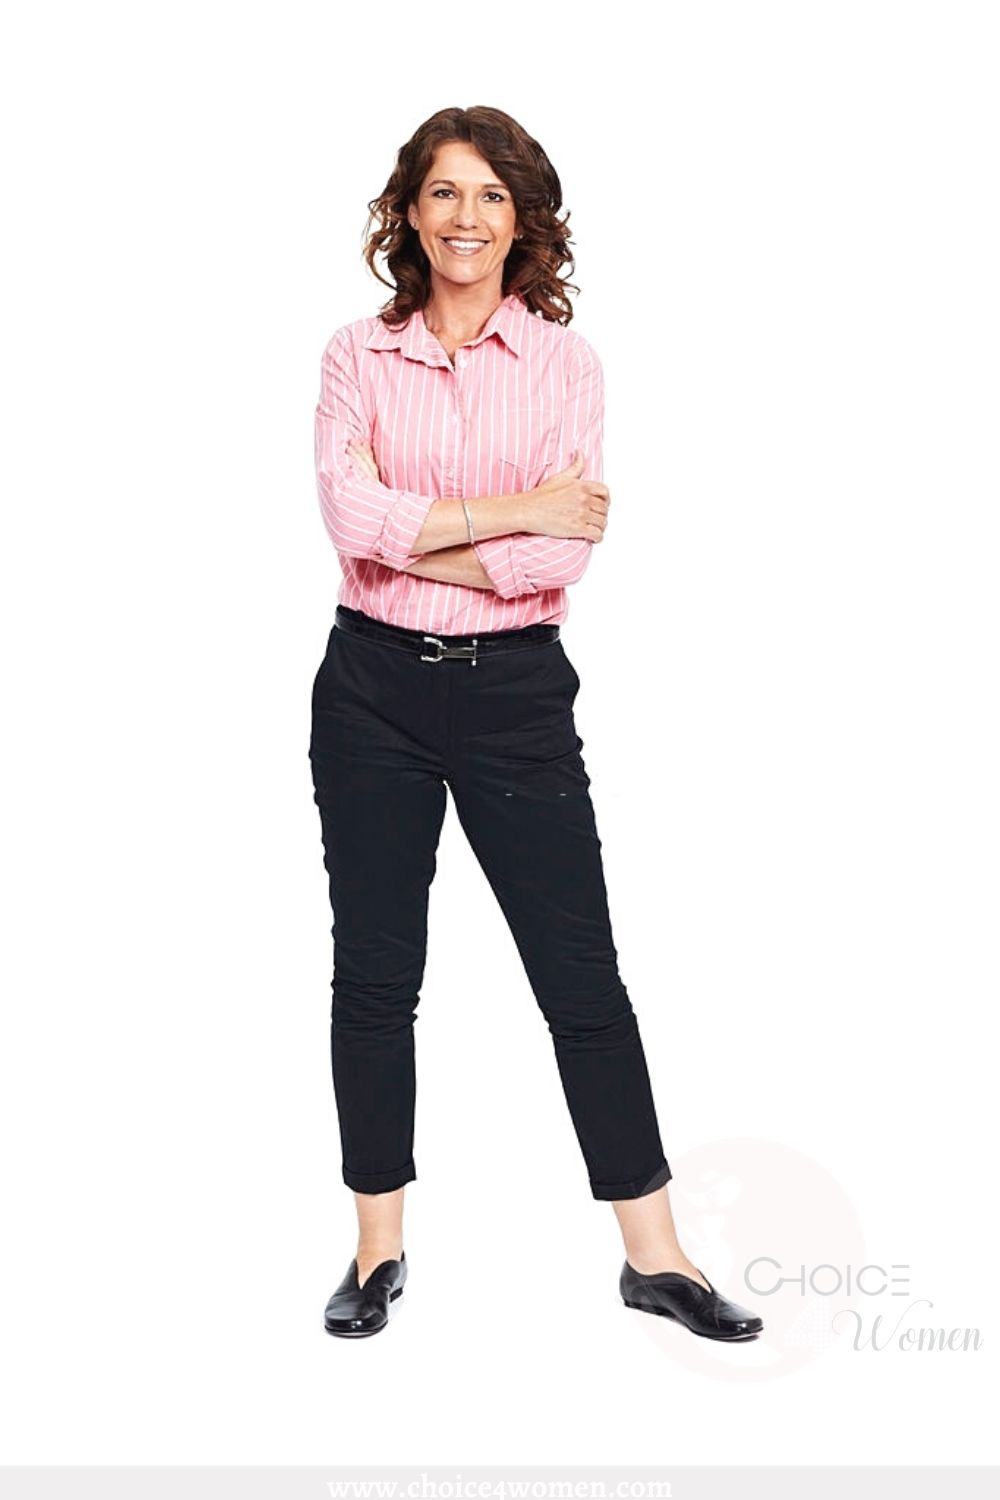 midi business outfits for women